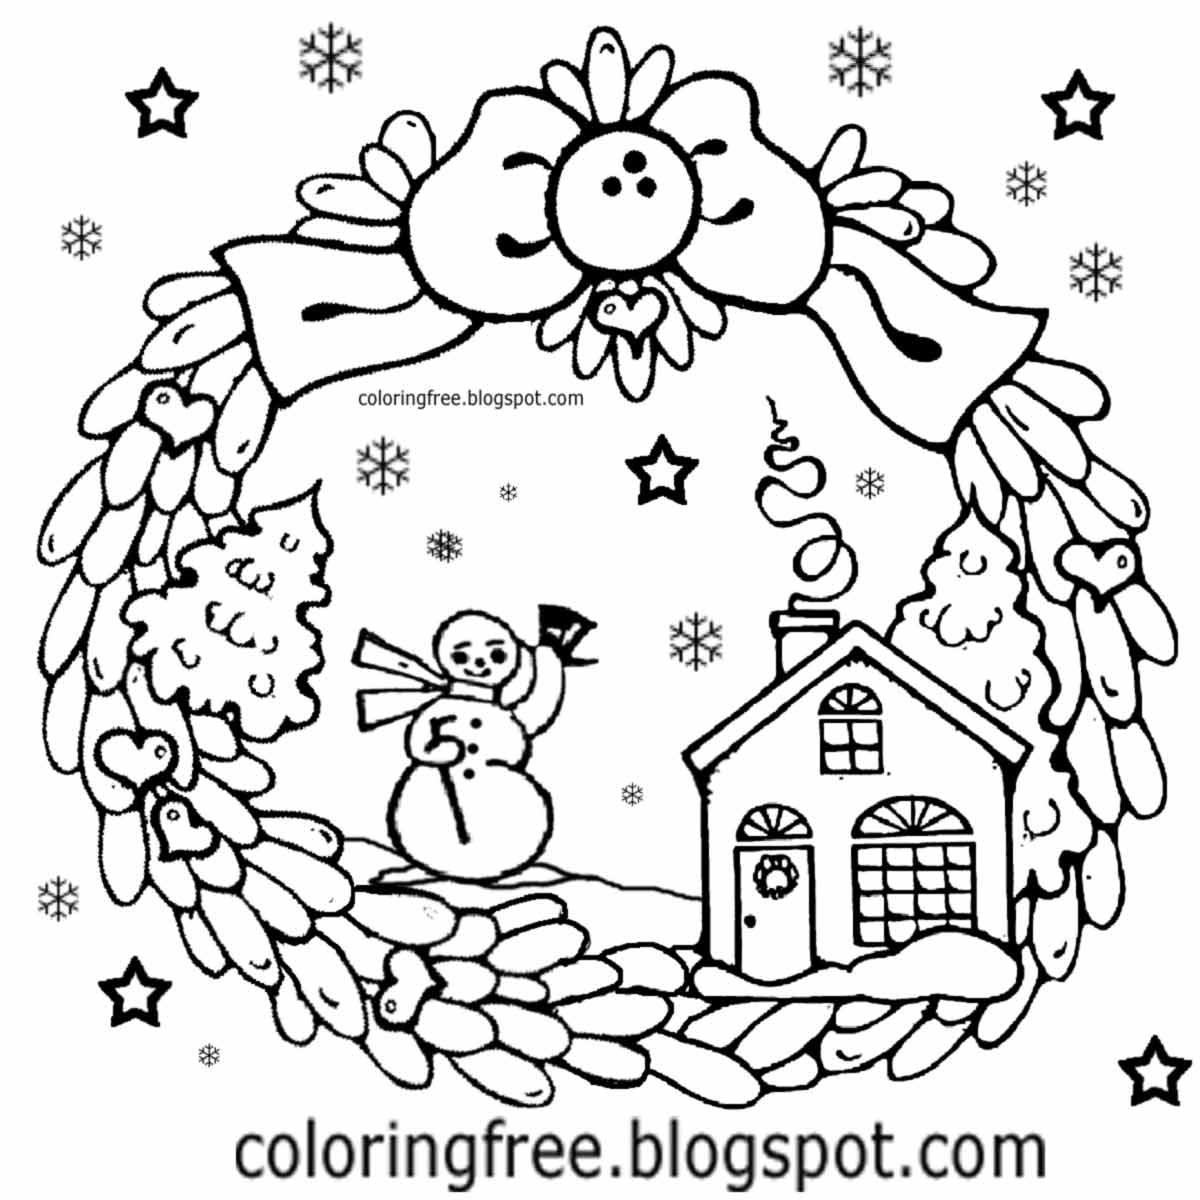 Mr Snowman On Christmas Touching A Snowflake Coloring Page: Free Coloring Pages Printable Pictures To Color Kids